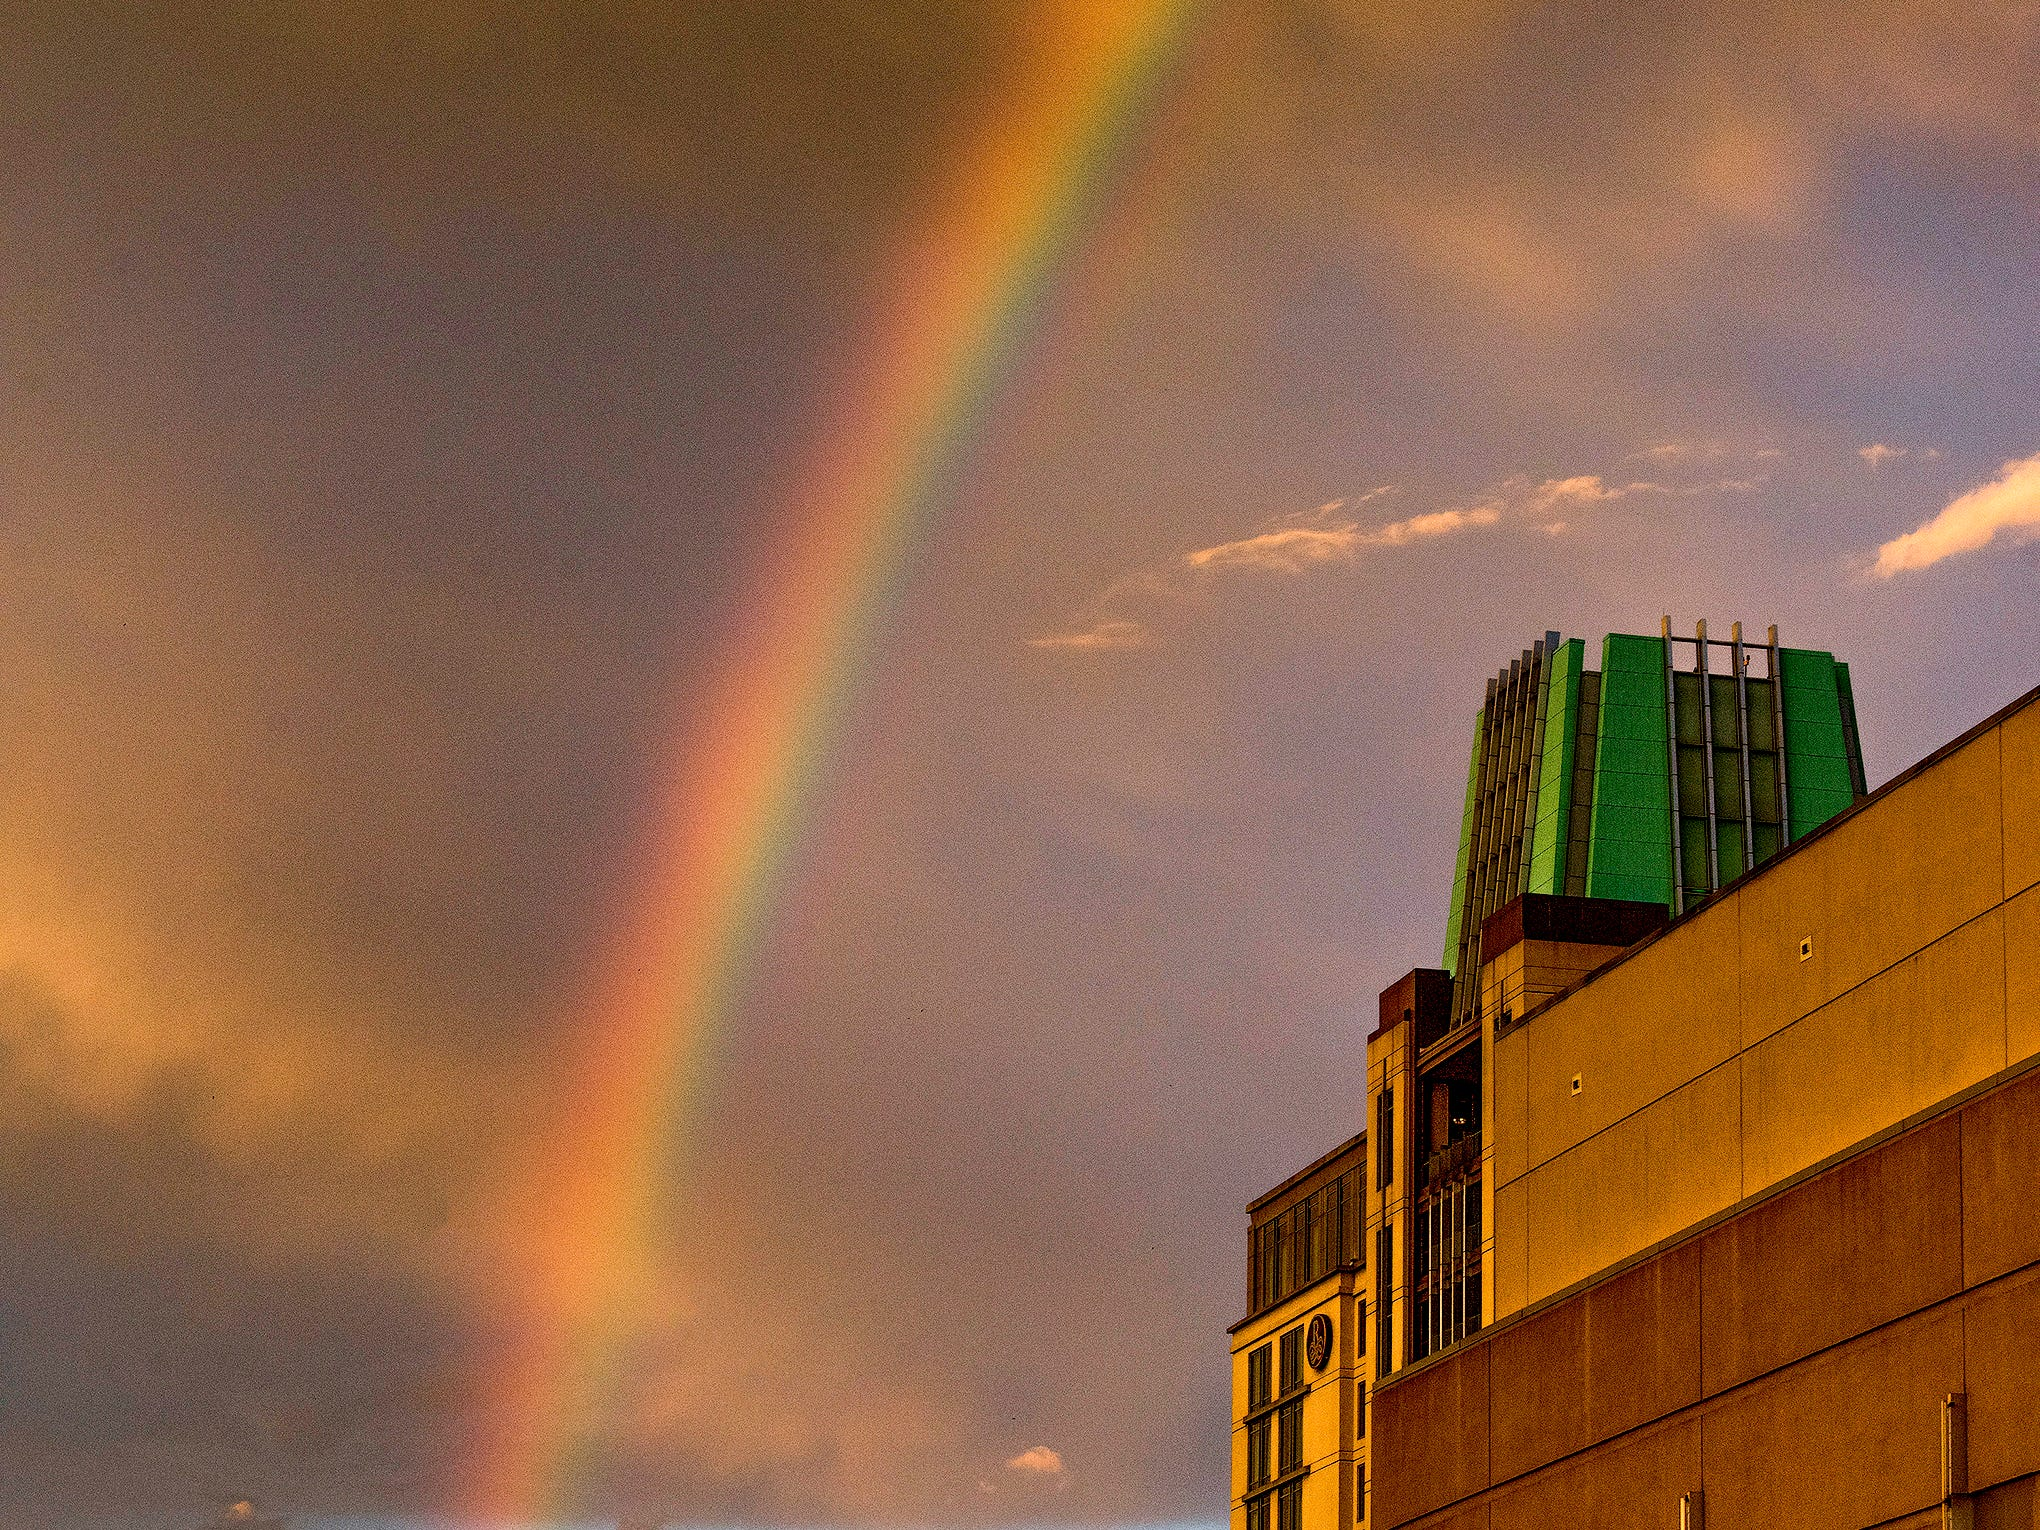 A rainbow is seen over Commerce Street in Montgomery, Ala., as the sun goes down on Tuesday August 28, 2018.